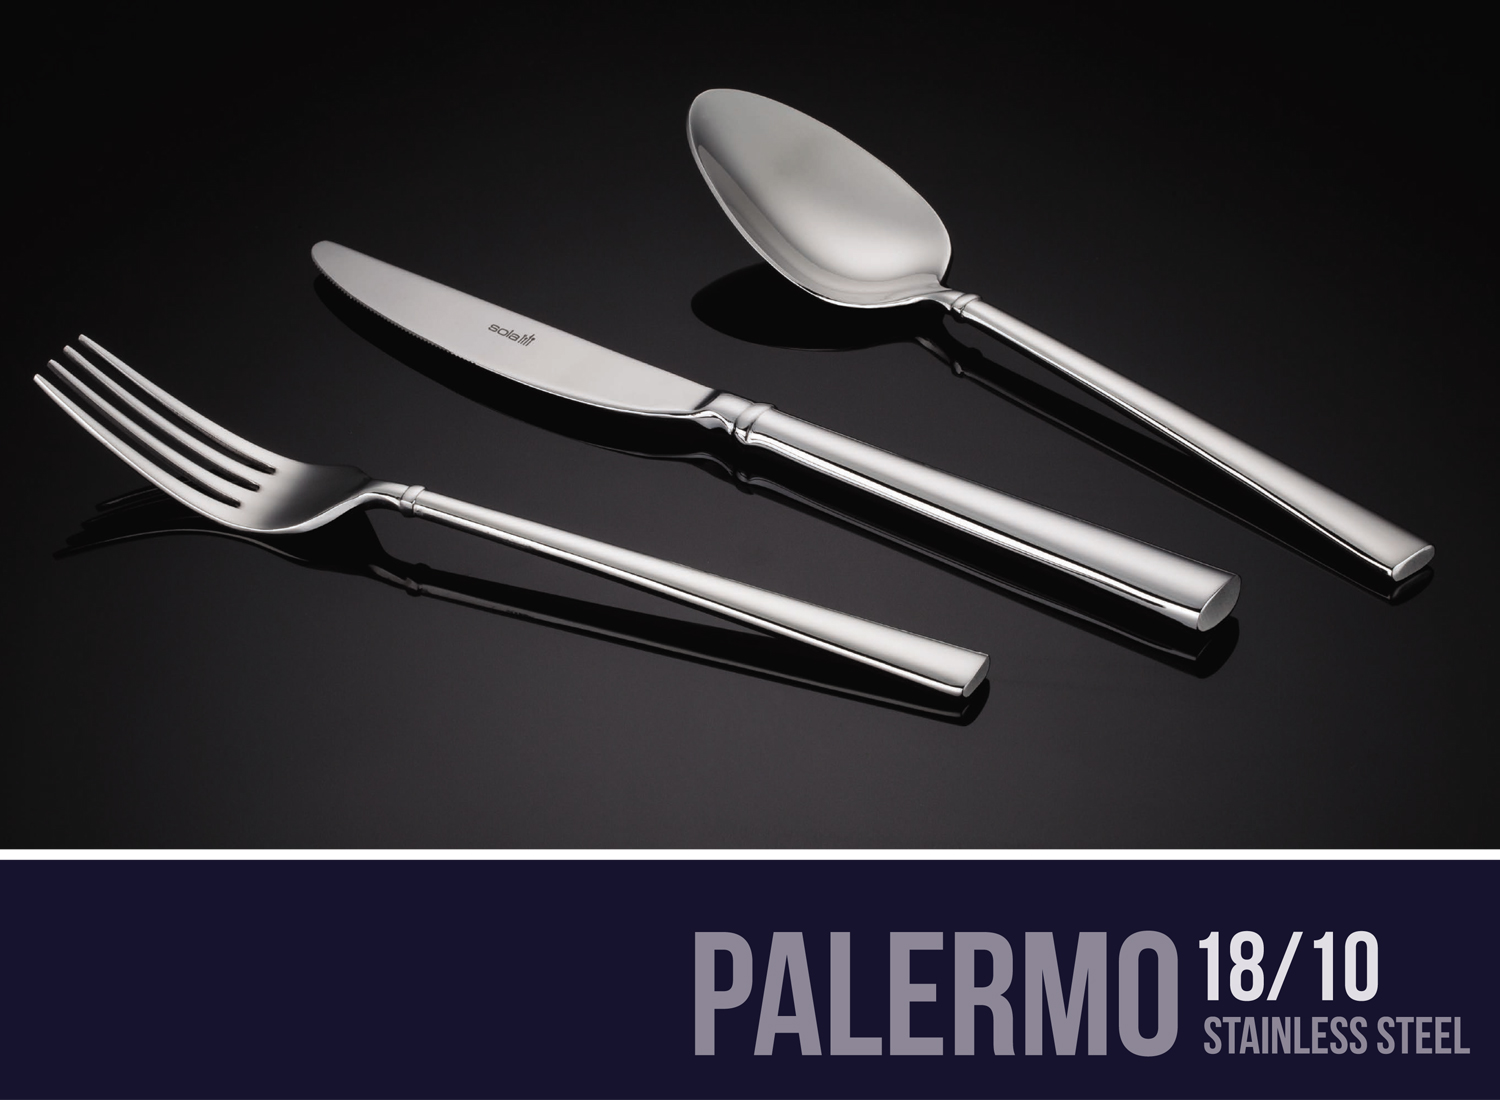 Palermo Stainless Steel